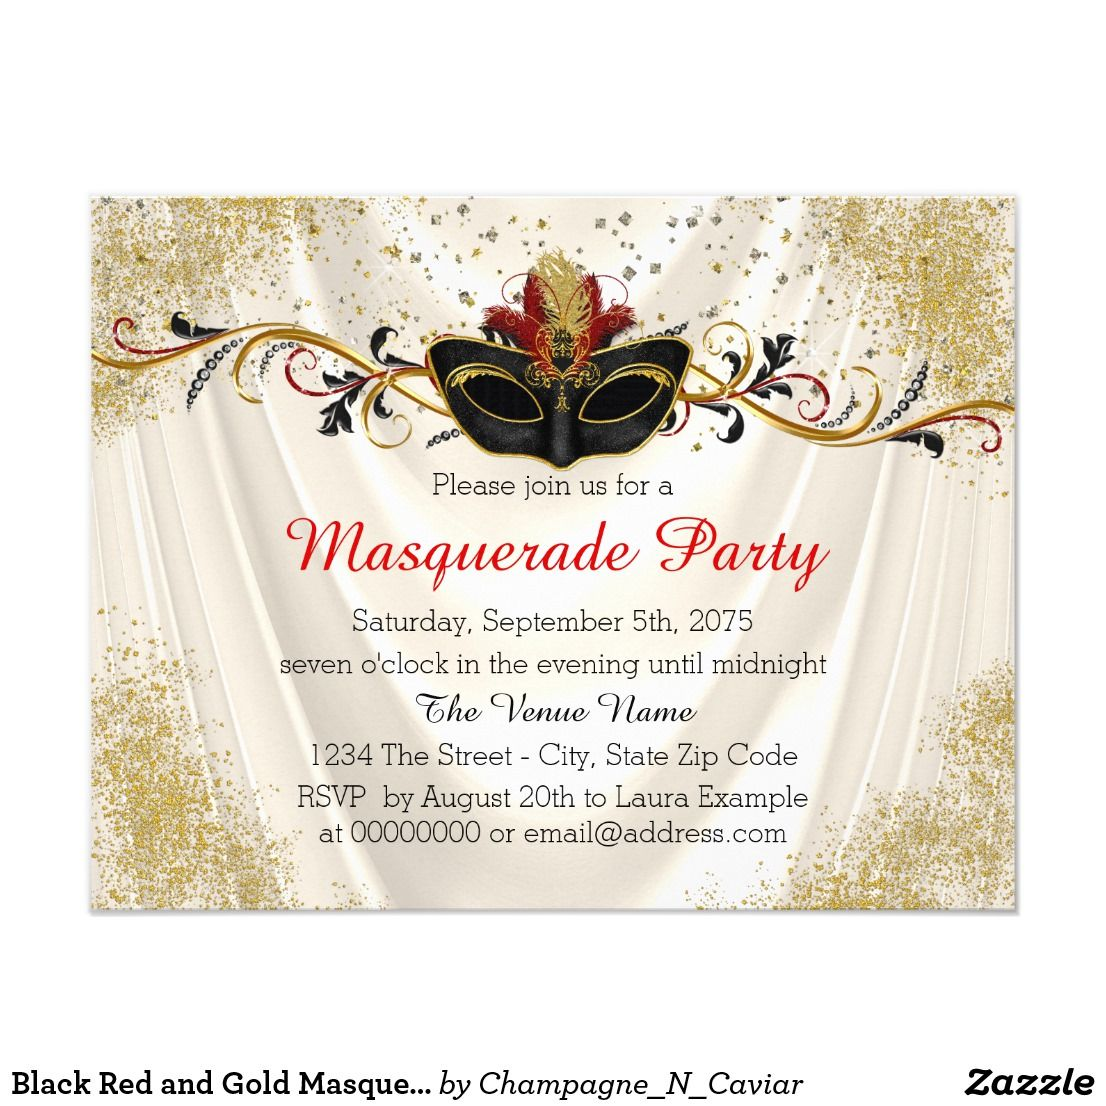 Black Red and Gold Masquerade Party Card | MASQUERADE SWEET SIXTEEN ...